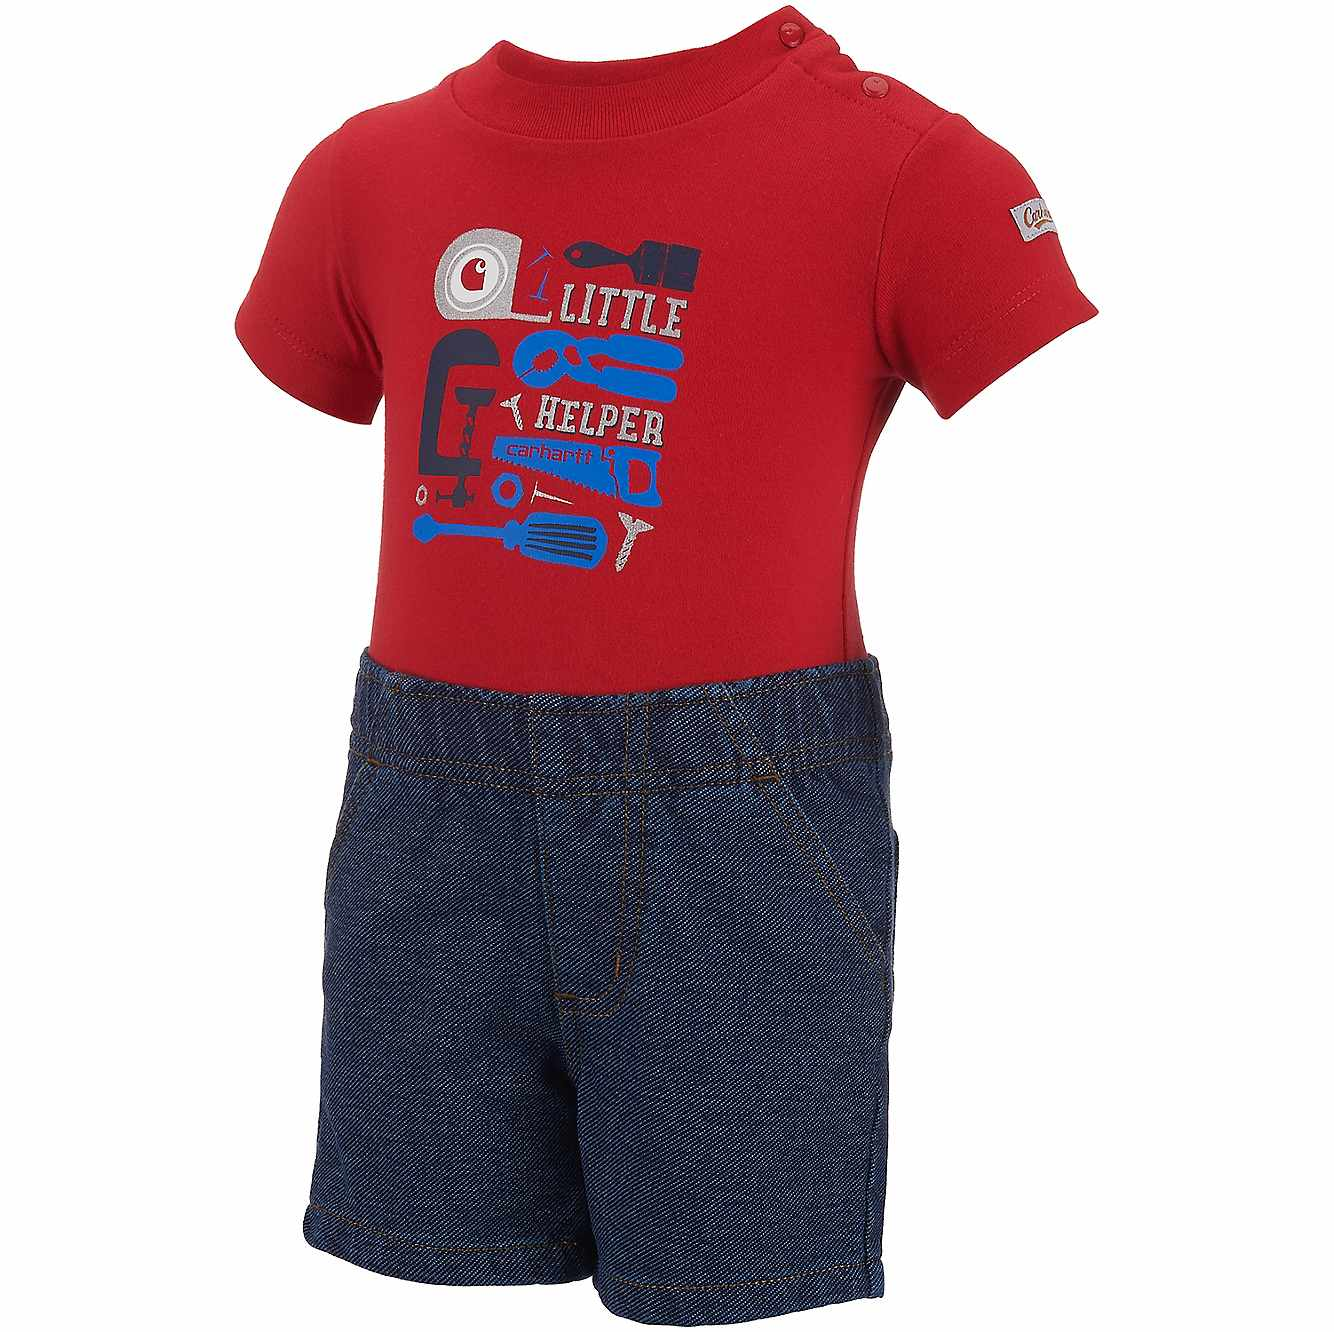 Picture of Infant/Toddler Little Helper 3pc Gift Set in Worn In Blue